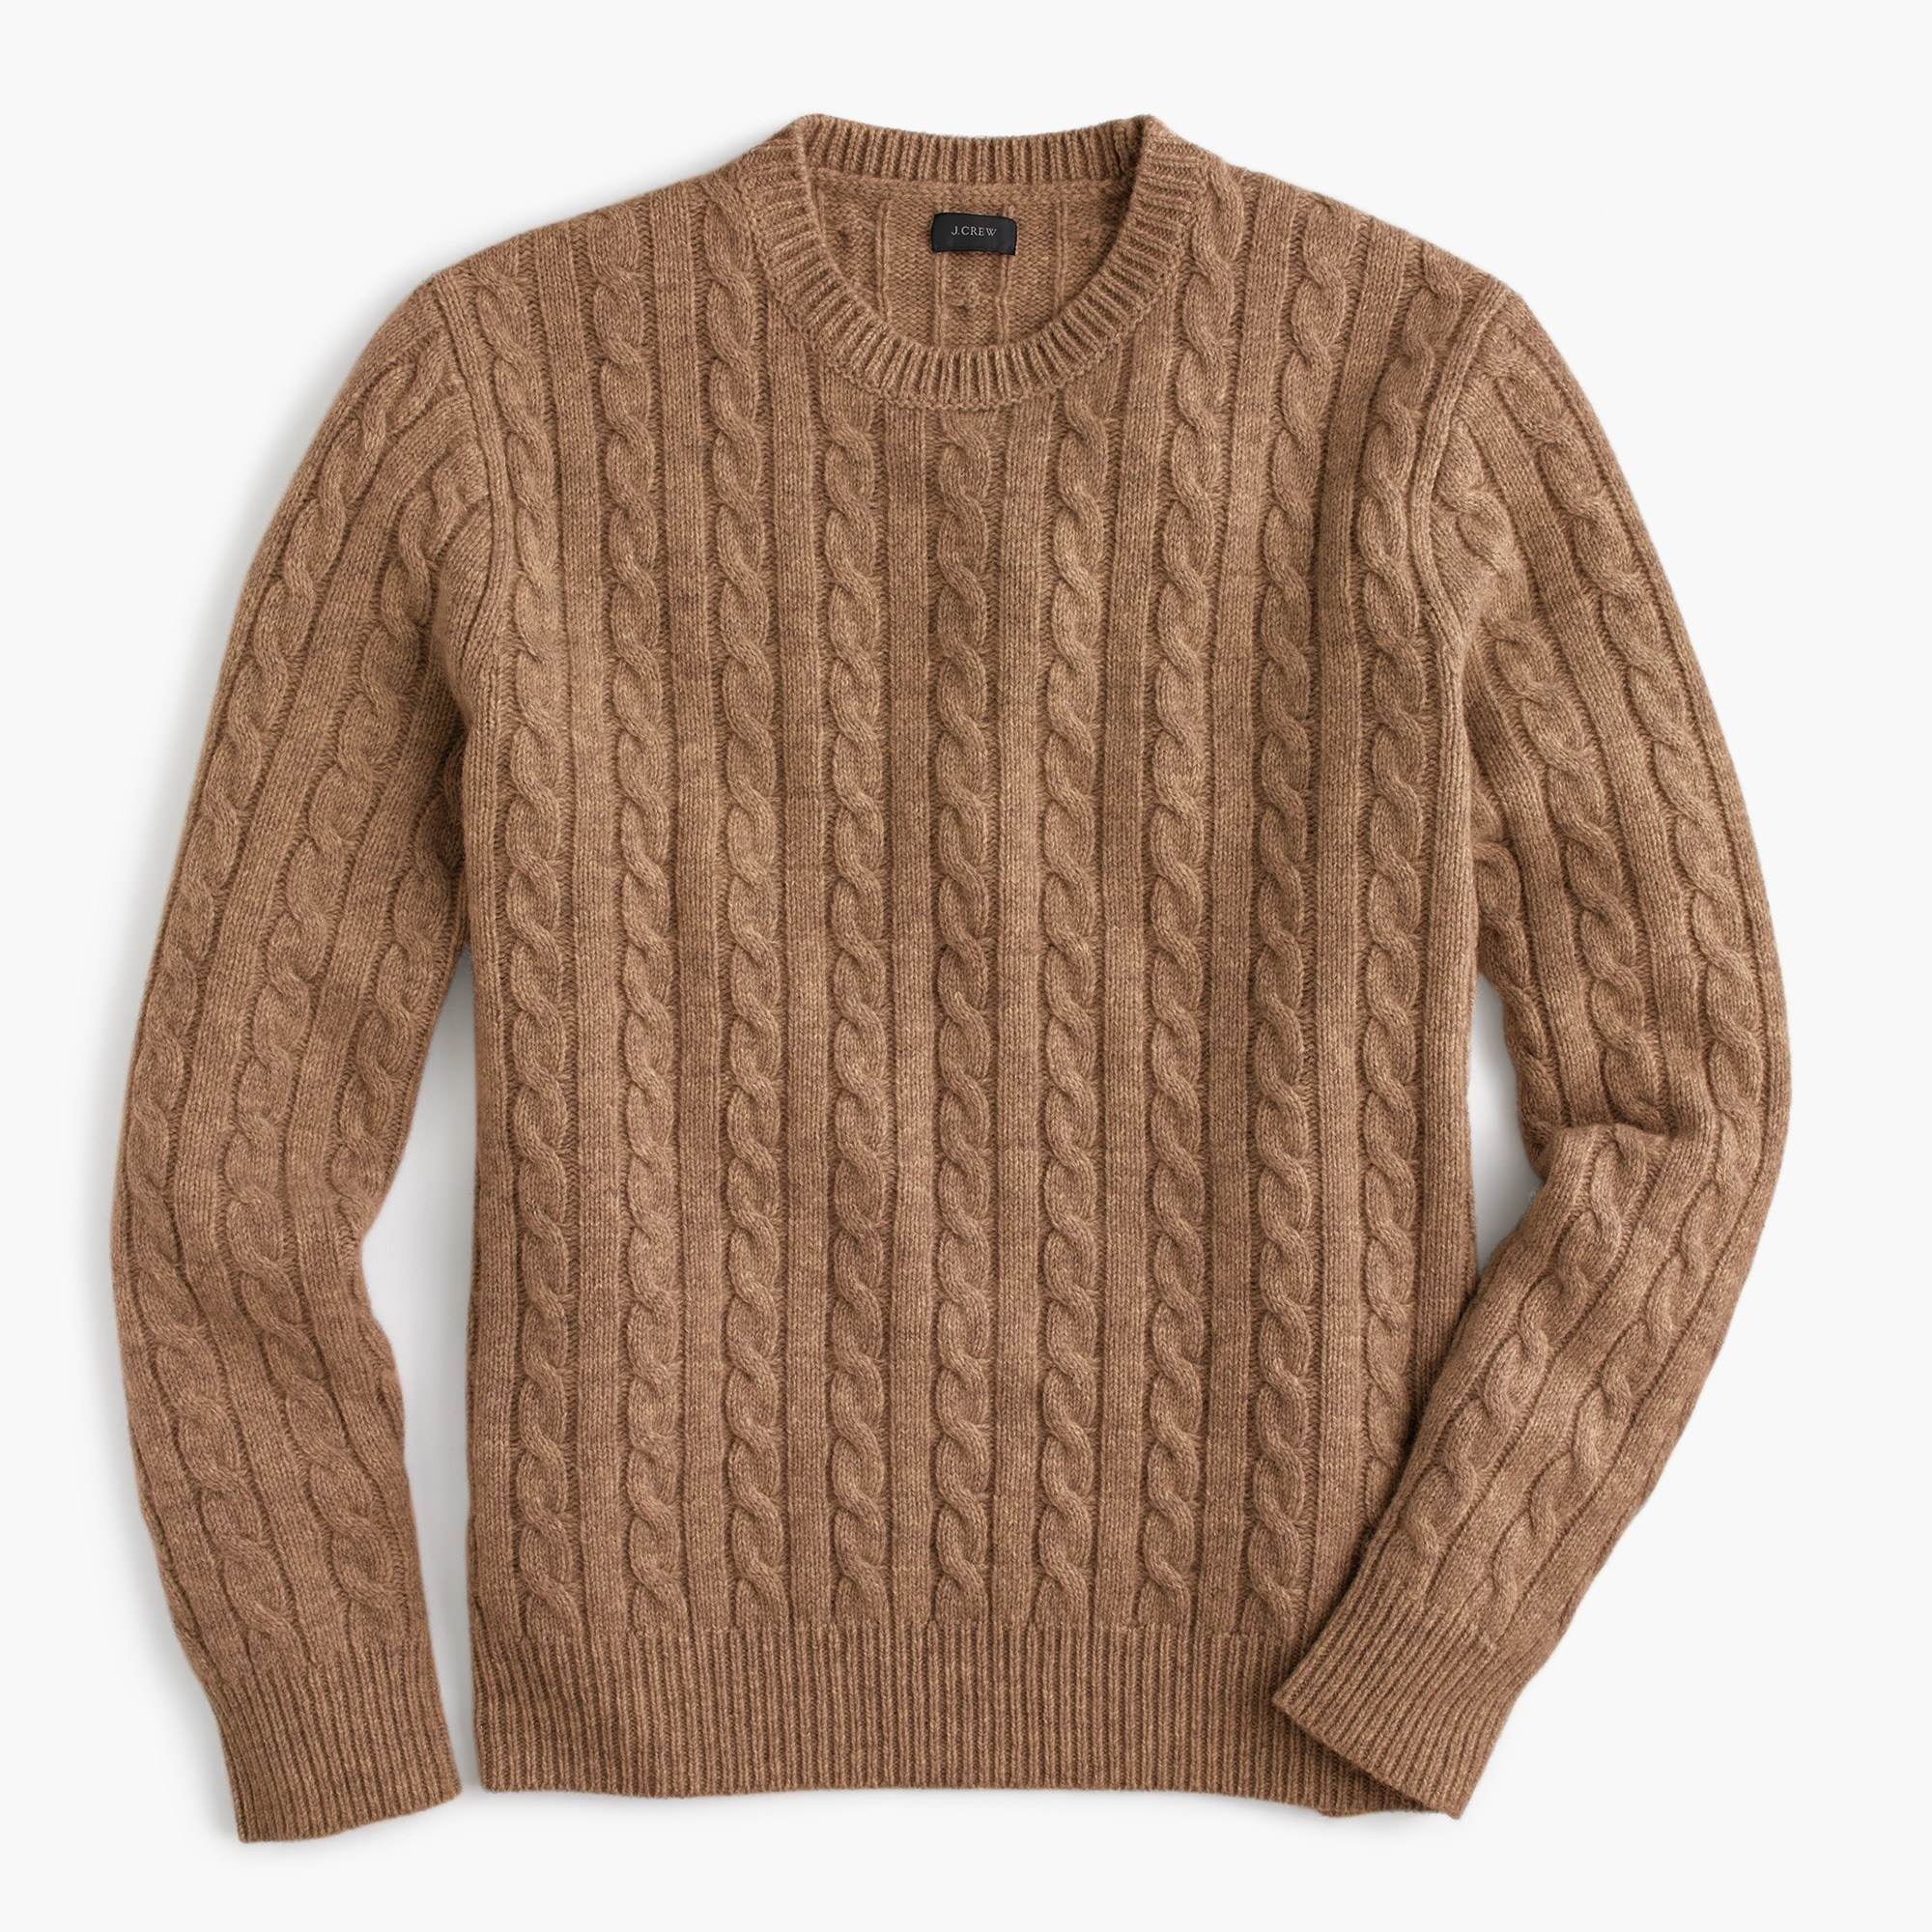 Cable Knit Sweater lambswool crewneck sweater in cable-knit : QOJEIZS